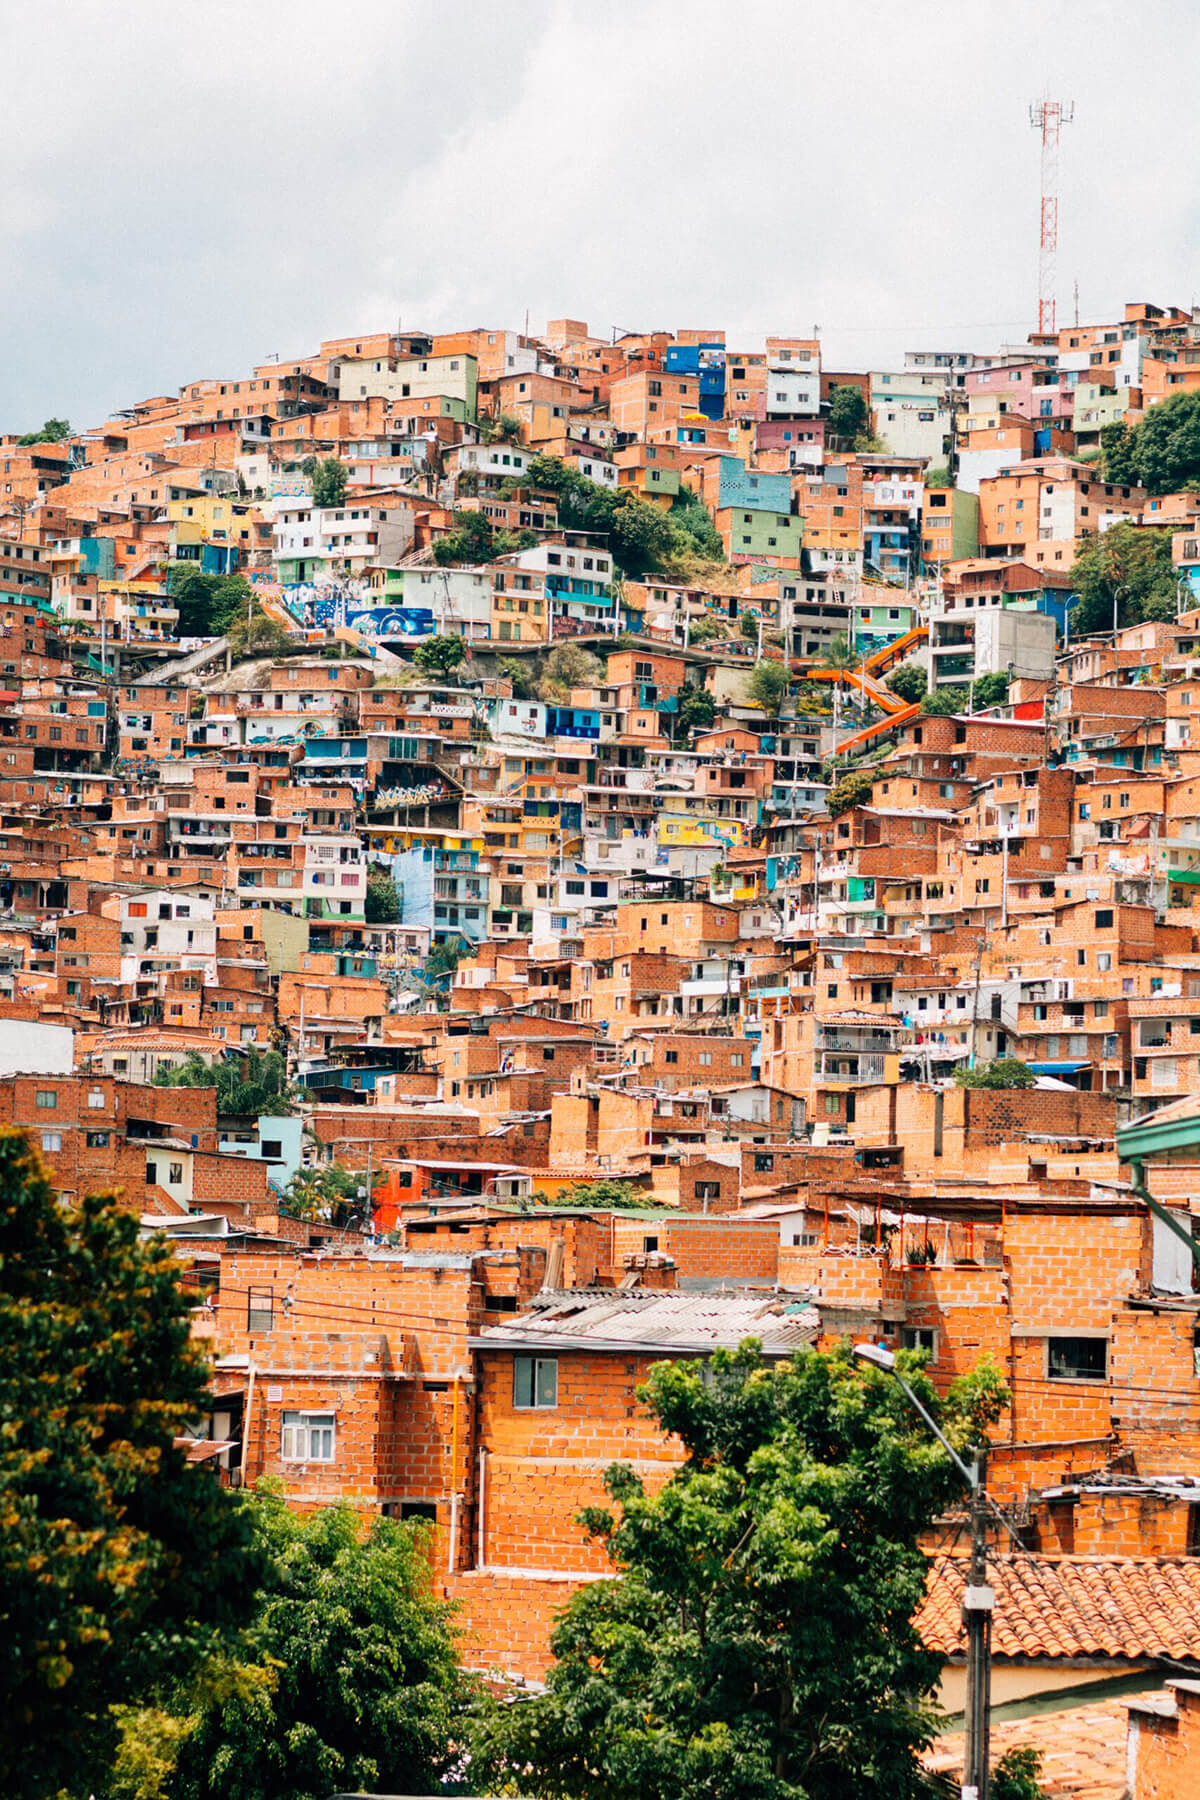 Photo overlooking housing units in Medellin, Colombia